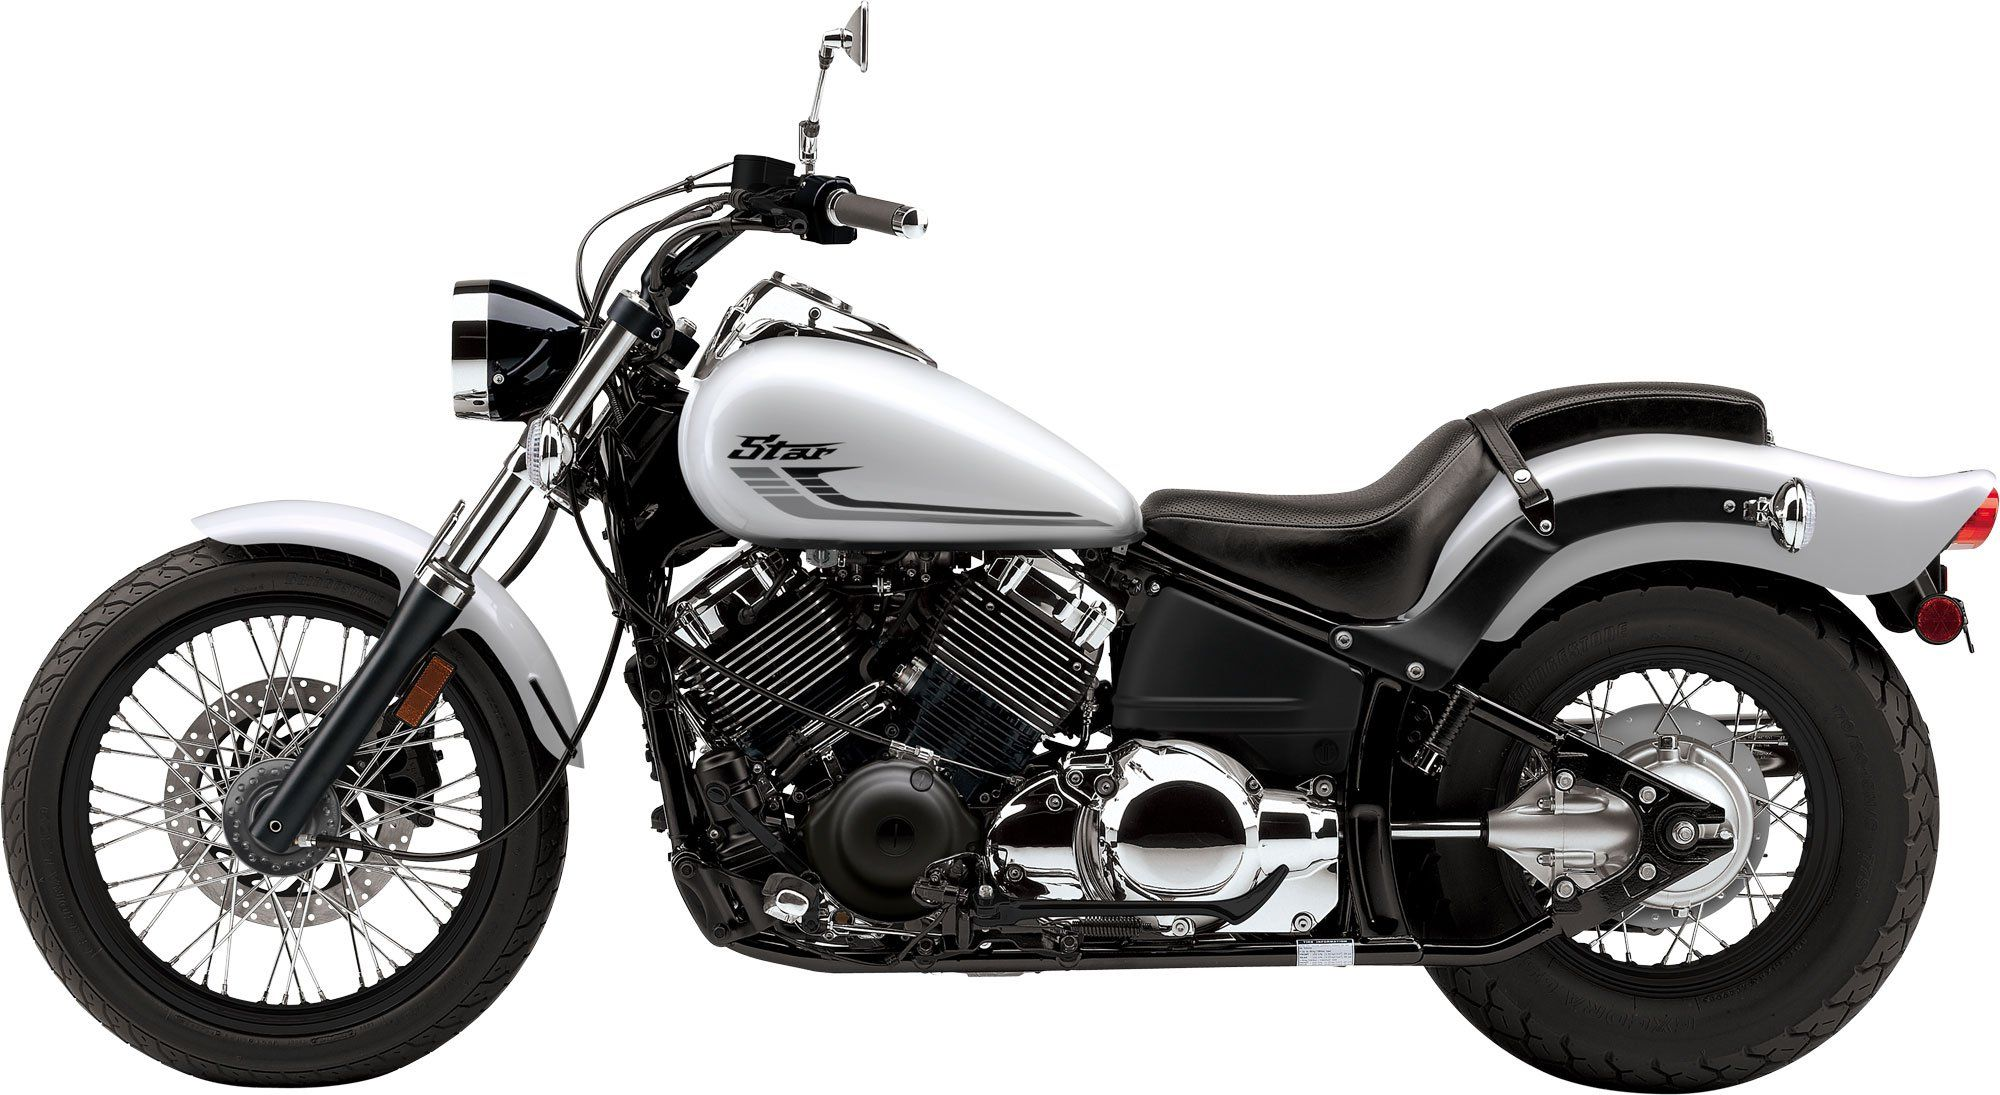 2019 Yamaha V Star 650 Release Date and Concept from 2018